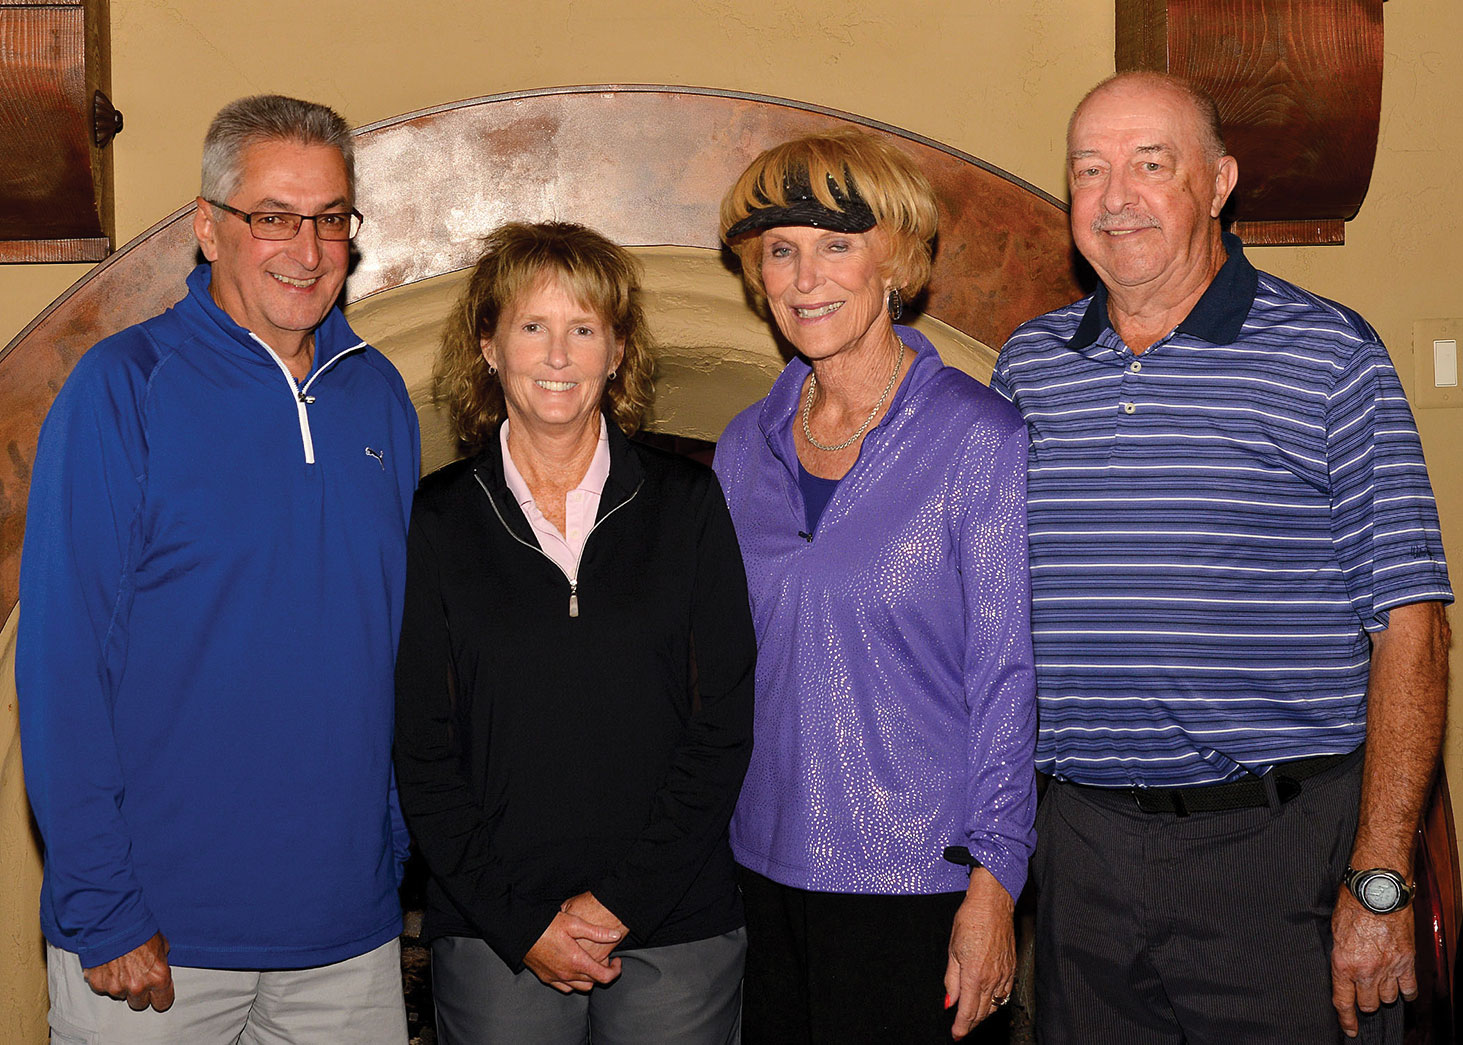 Left to right: Dan Russell, Mary Leversee, Kathleen Weiss and Sam Sollenberger; photo by Bob Koblewski